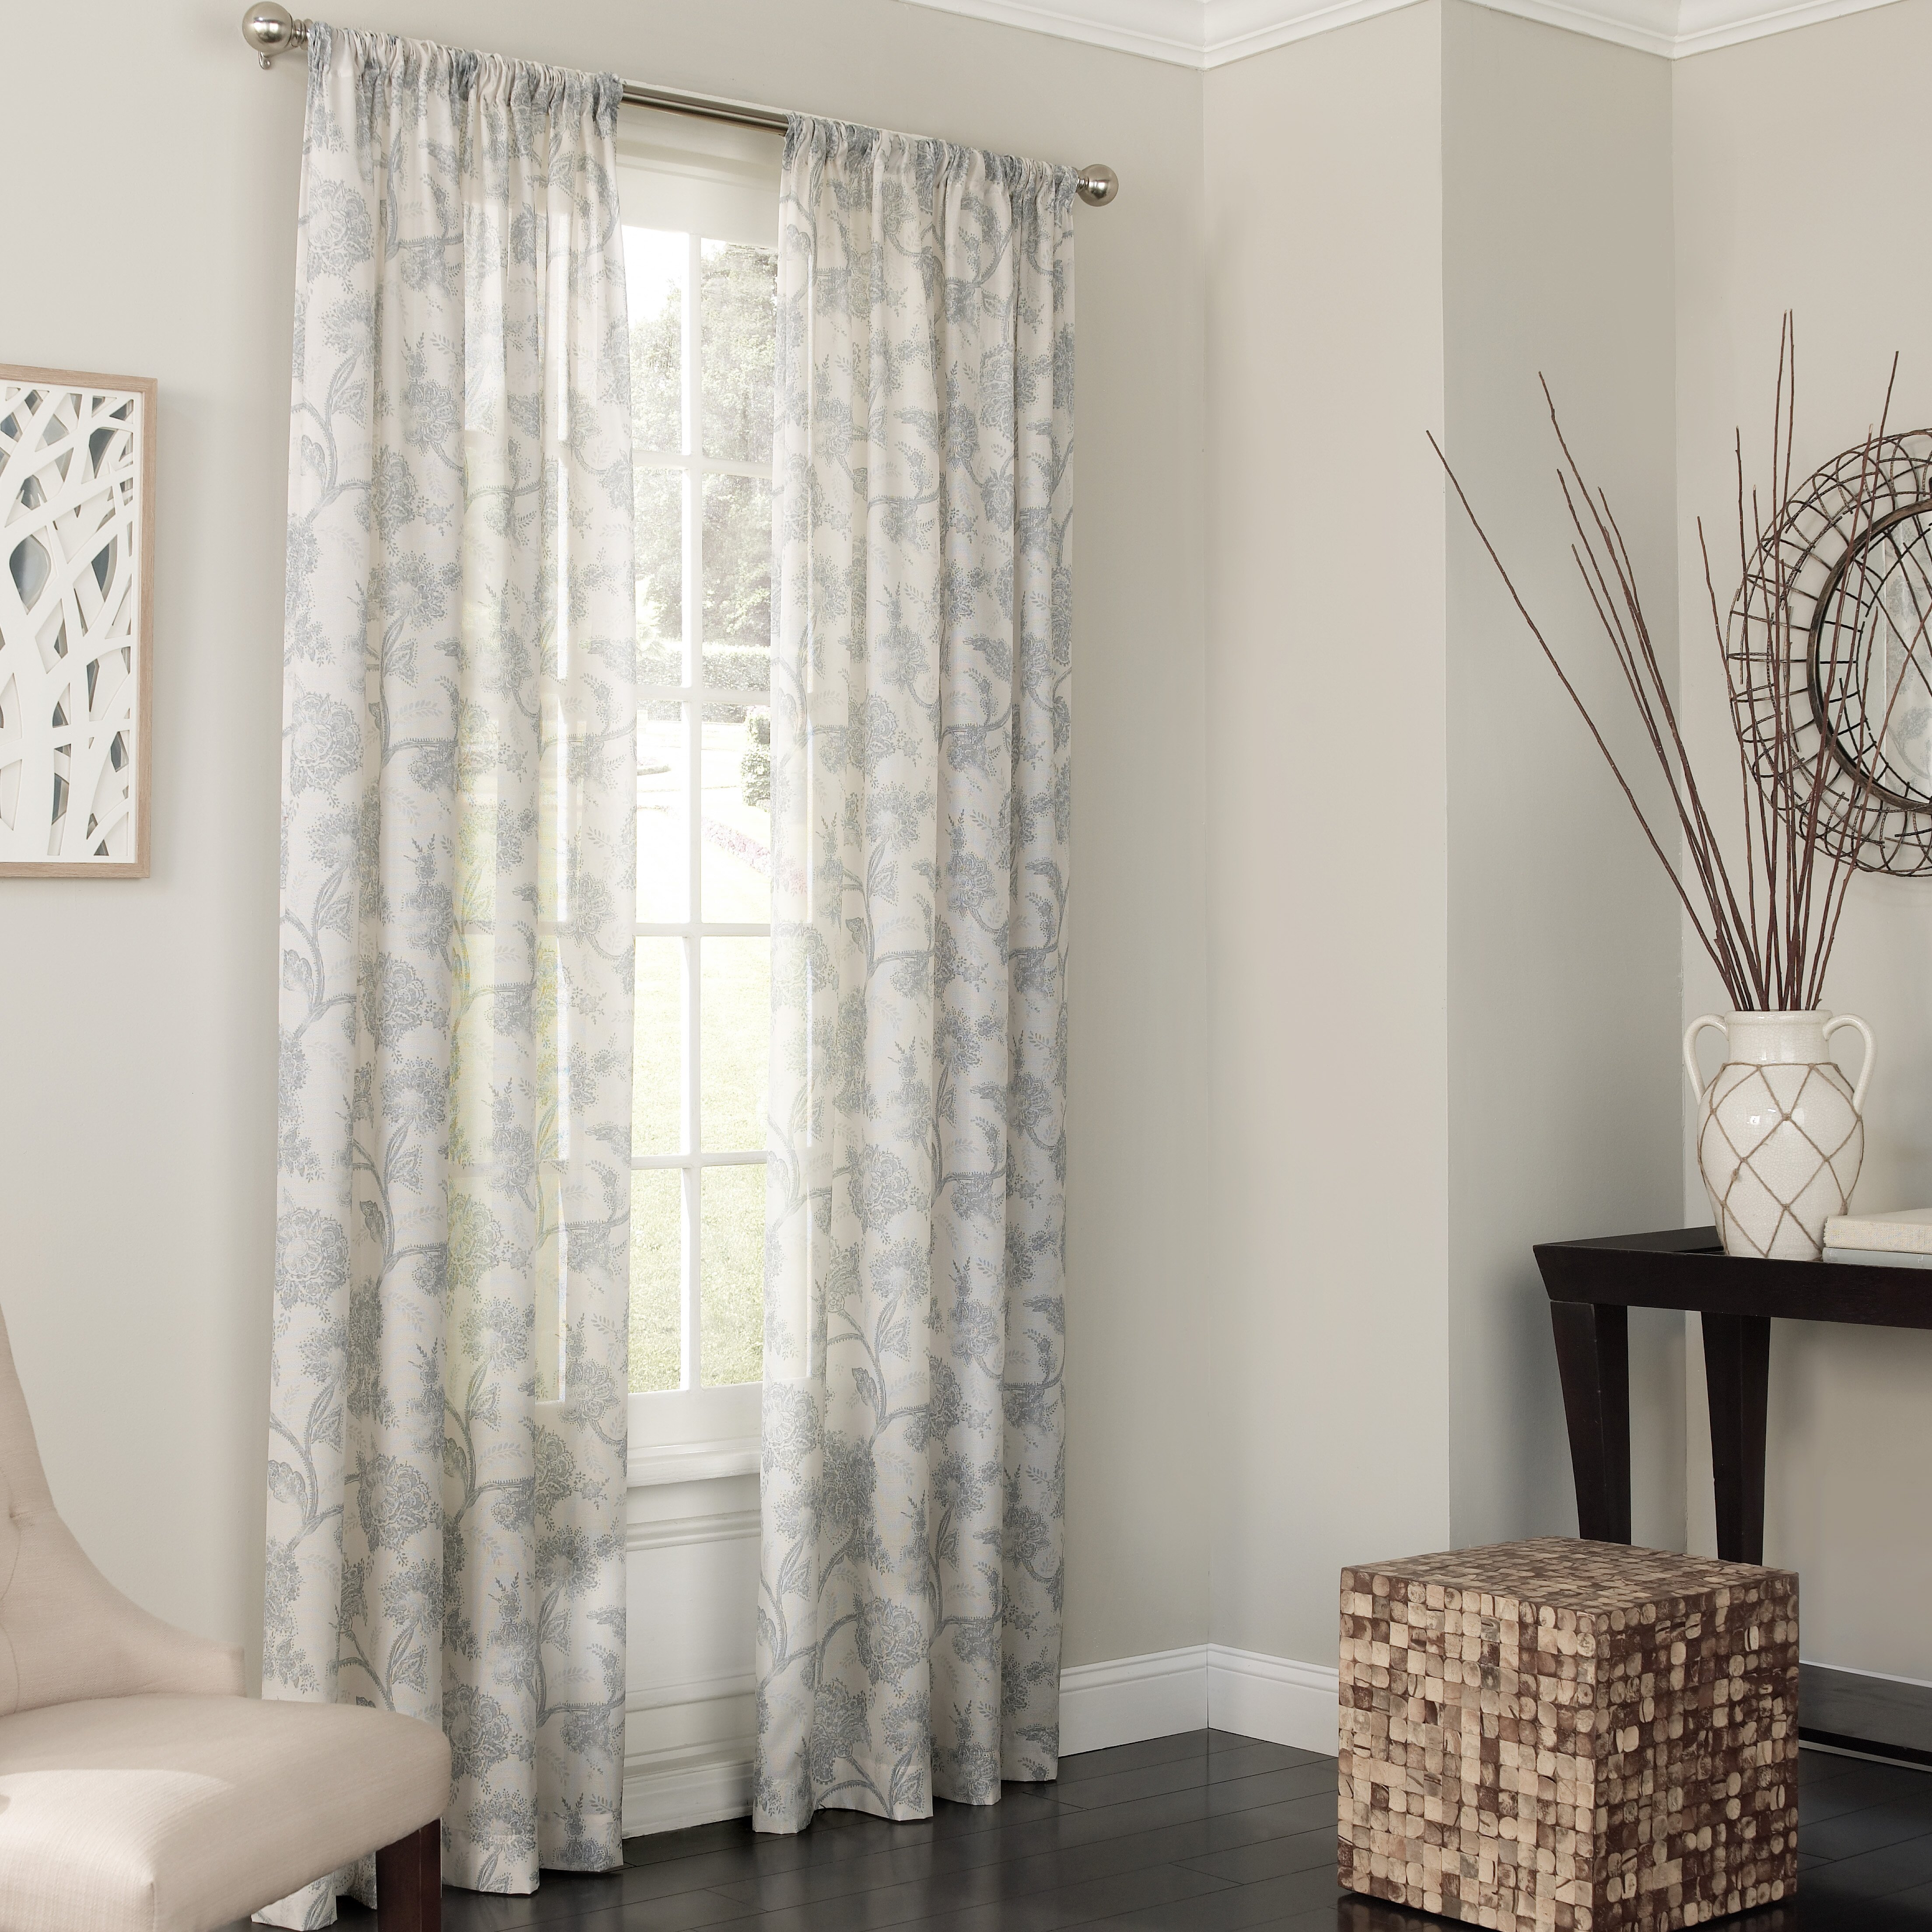 Sheer white bedroom curtains - Keystone Nature Floral Sheer Single Curtain Panel